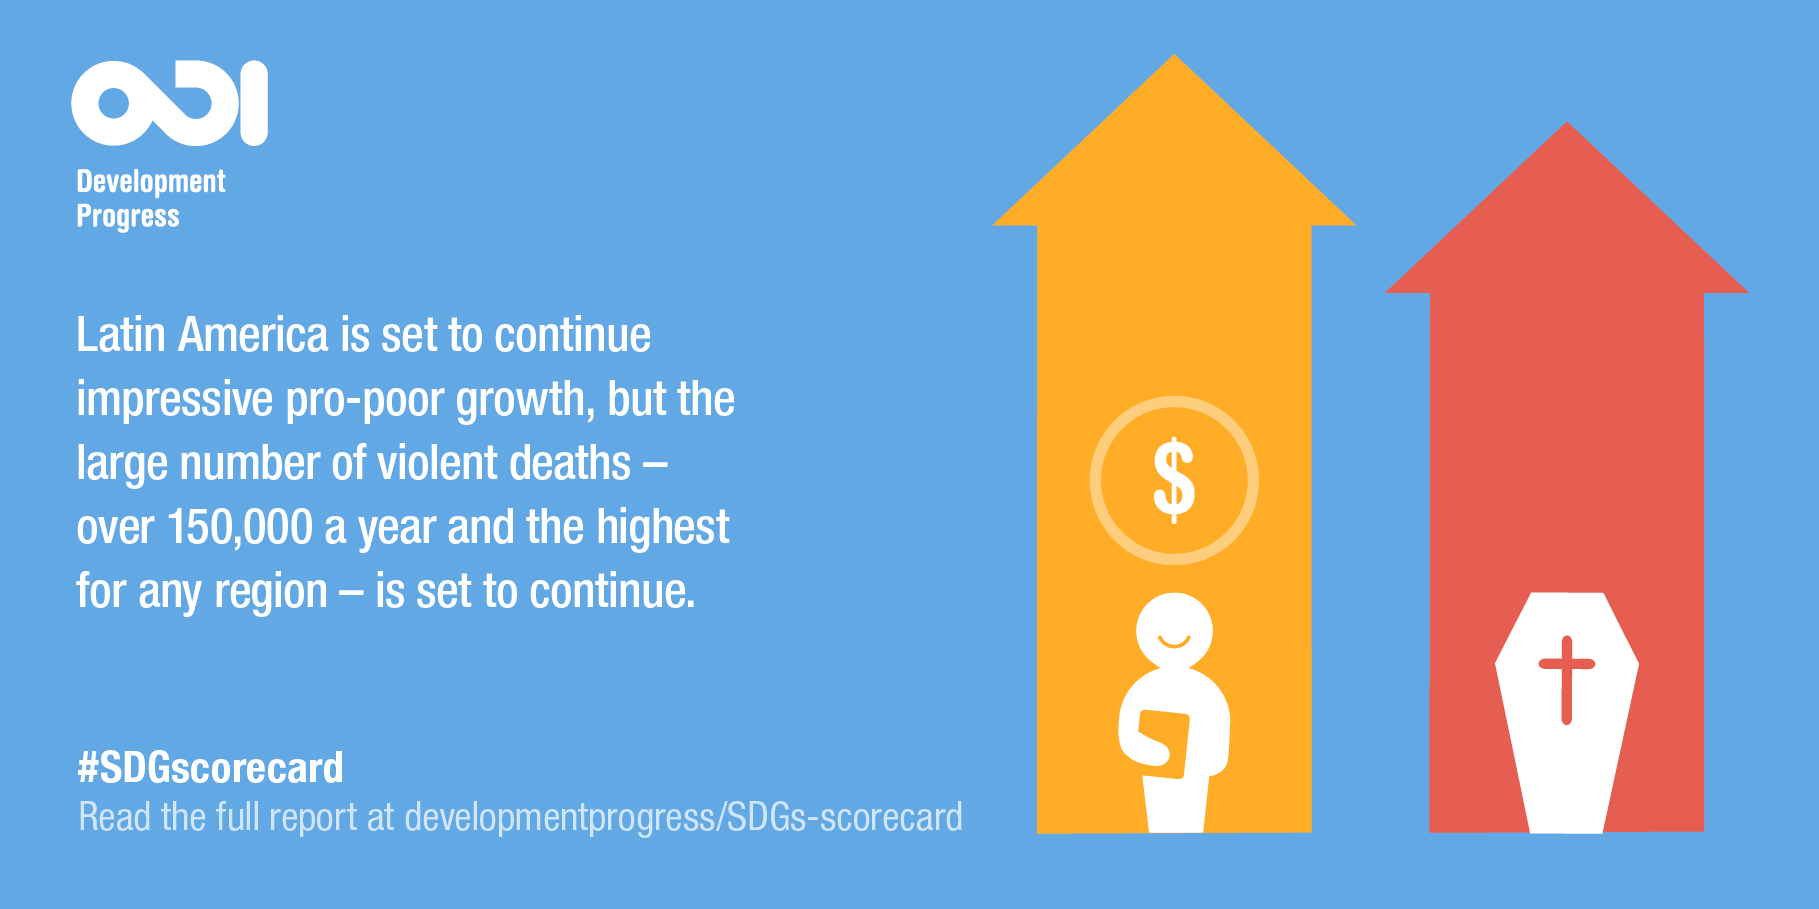 Pro-poor growth and violence in Latin America infographic